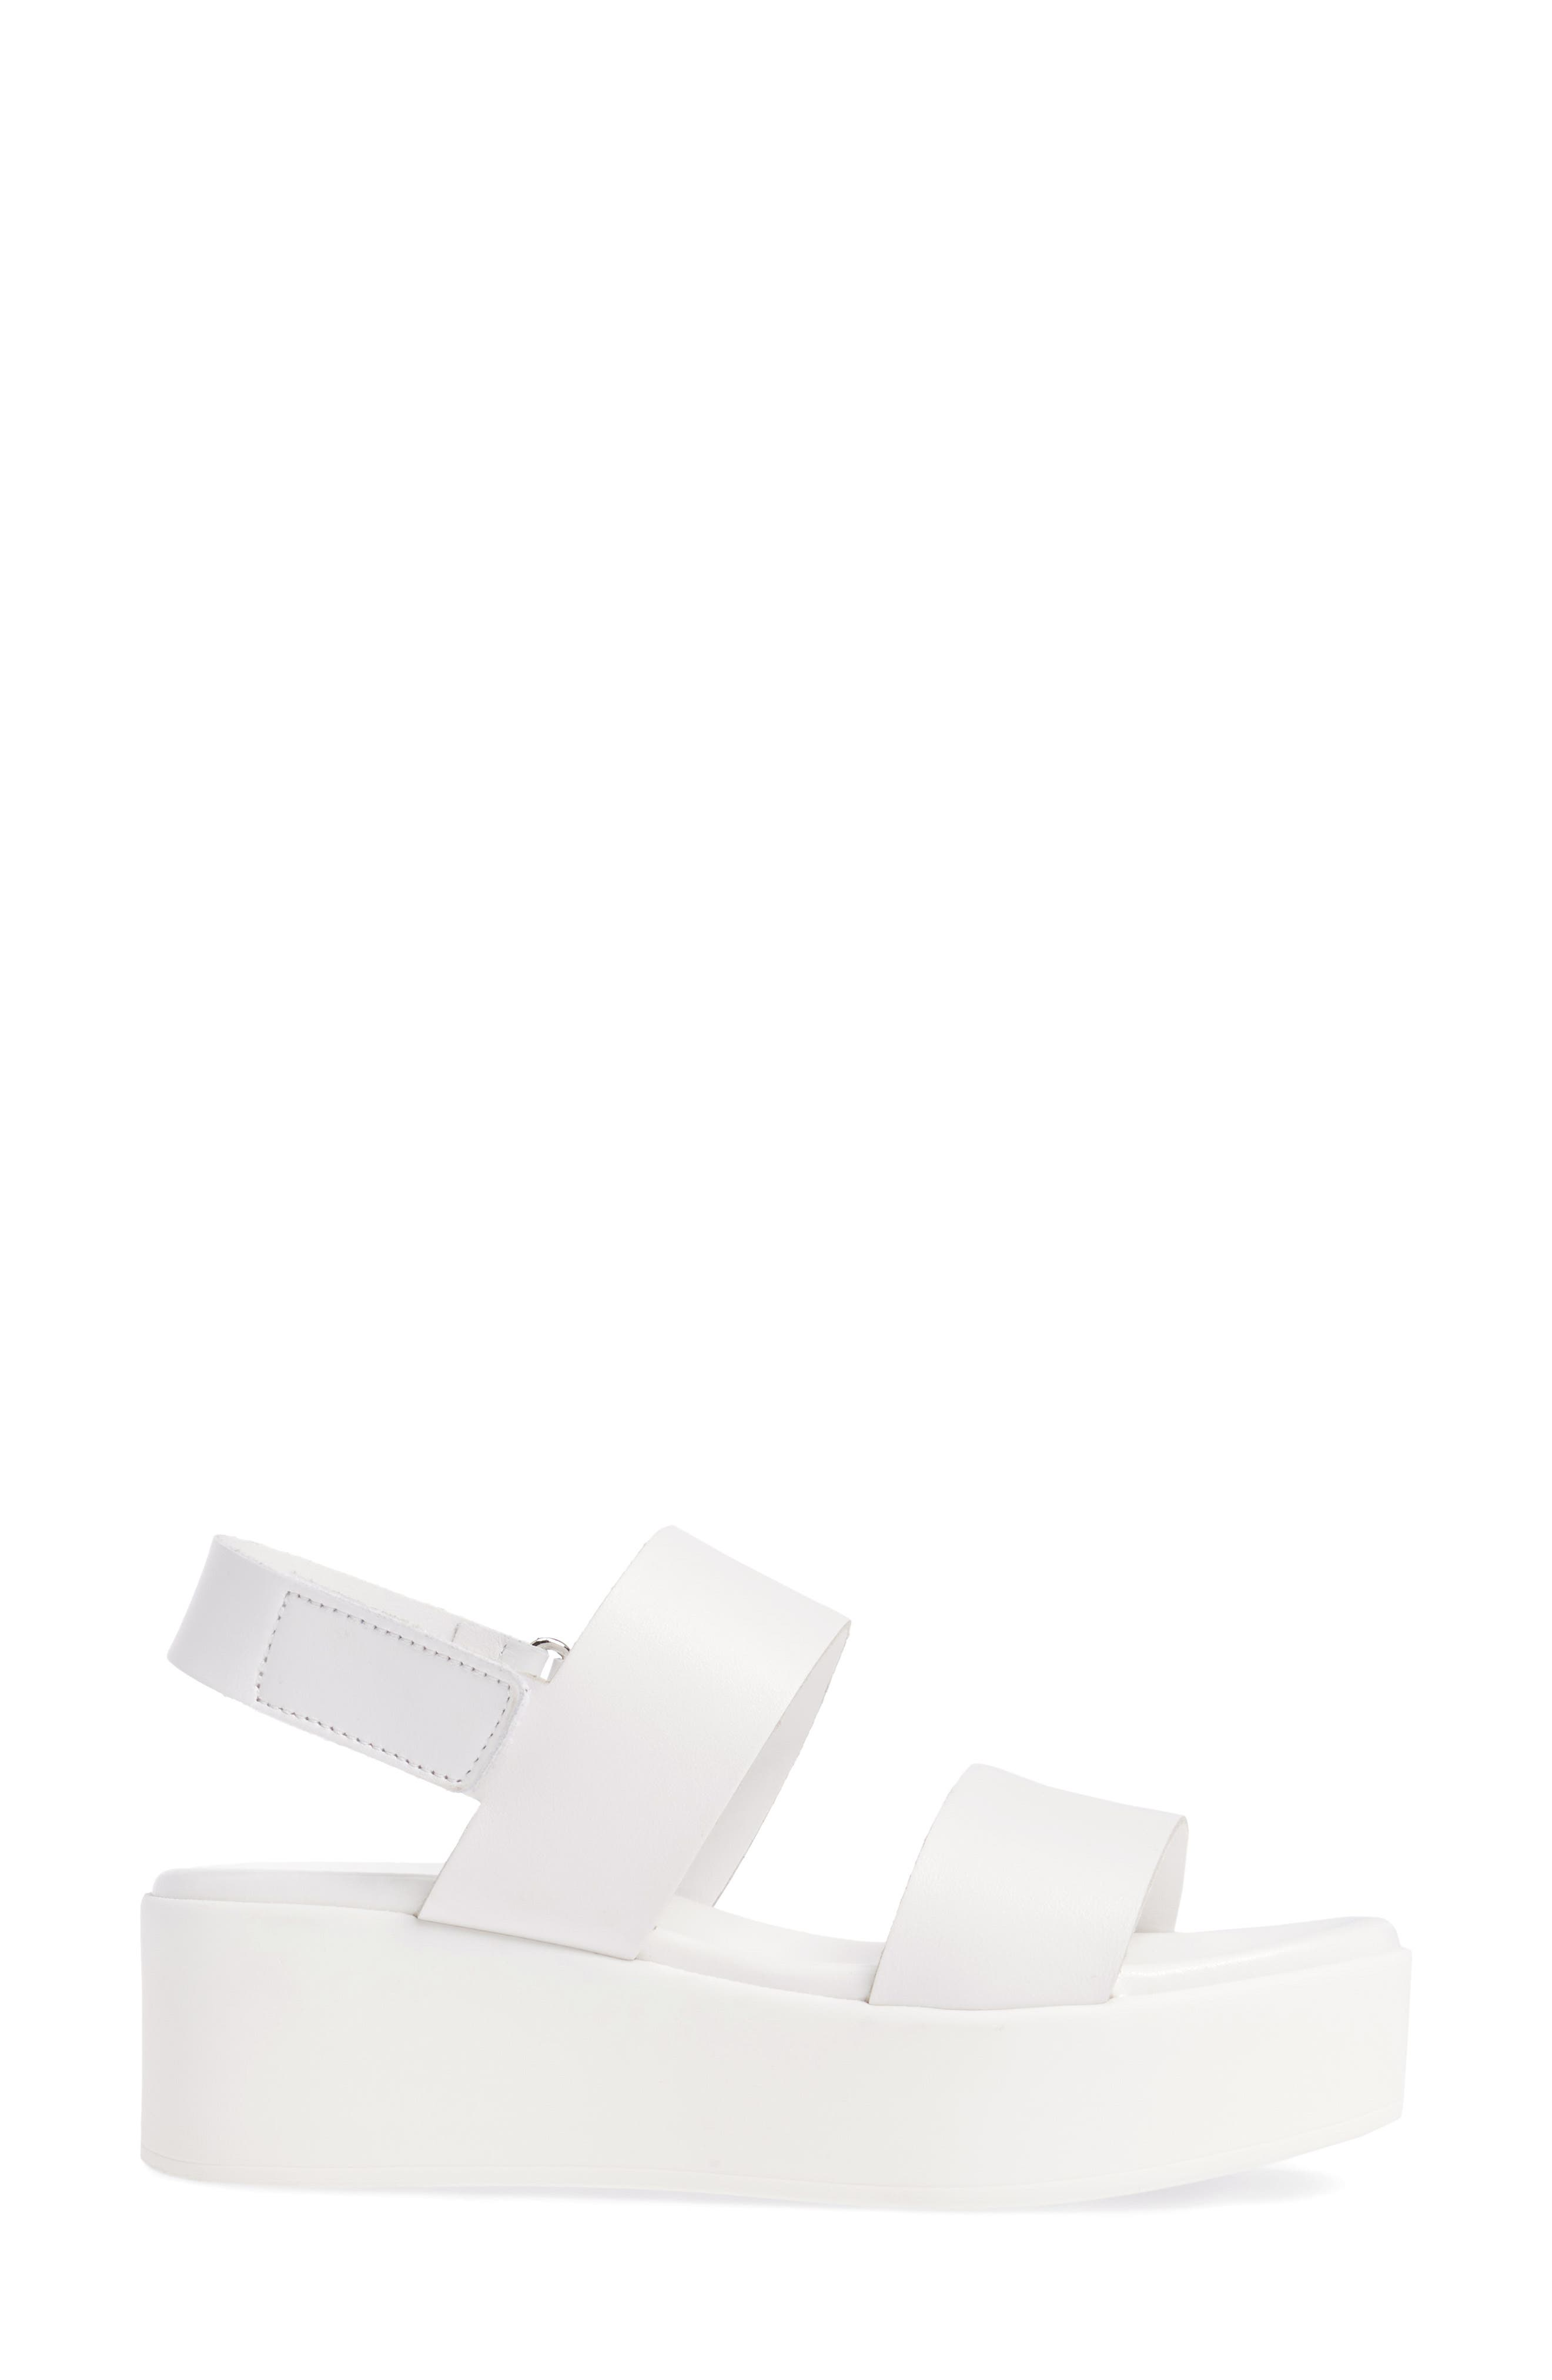 Alternate Image 3  - Steve Madden Rachel Platform Wedge Sandal (Women)